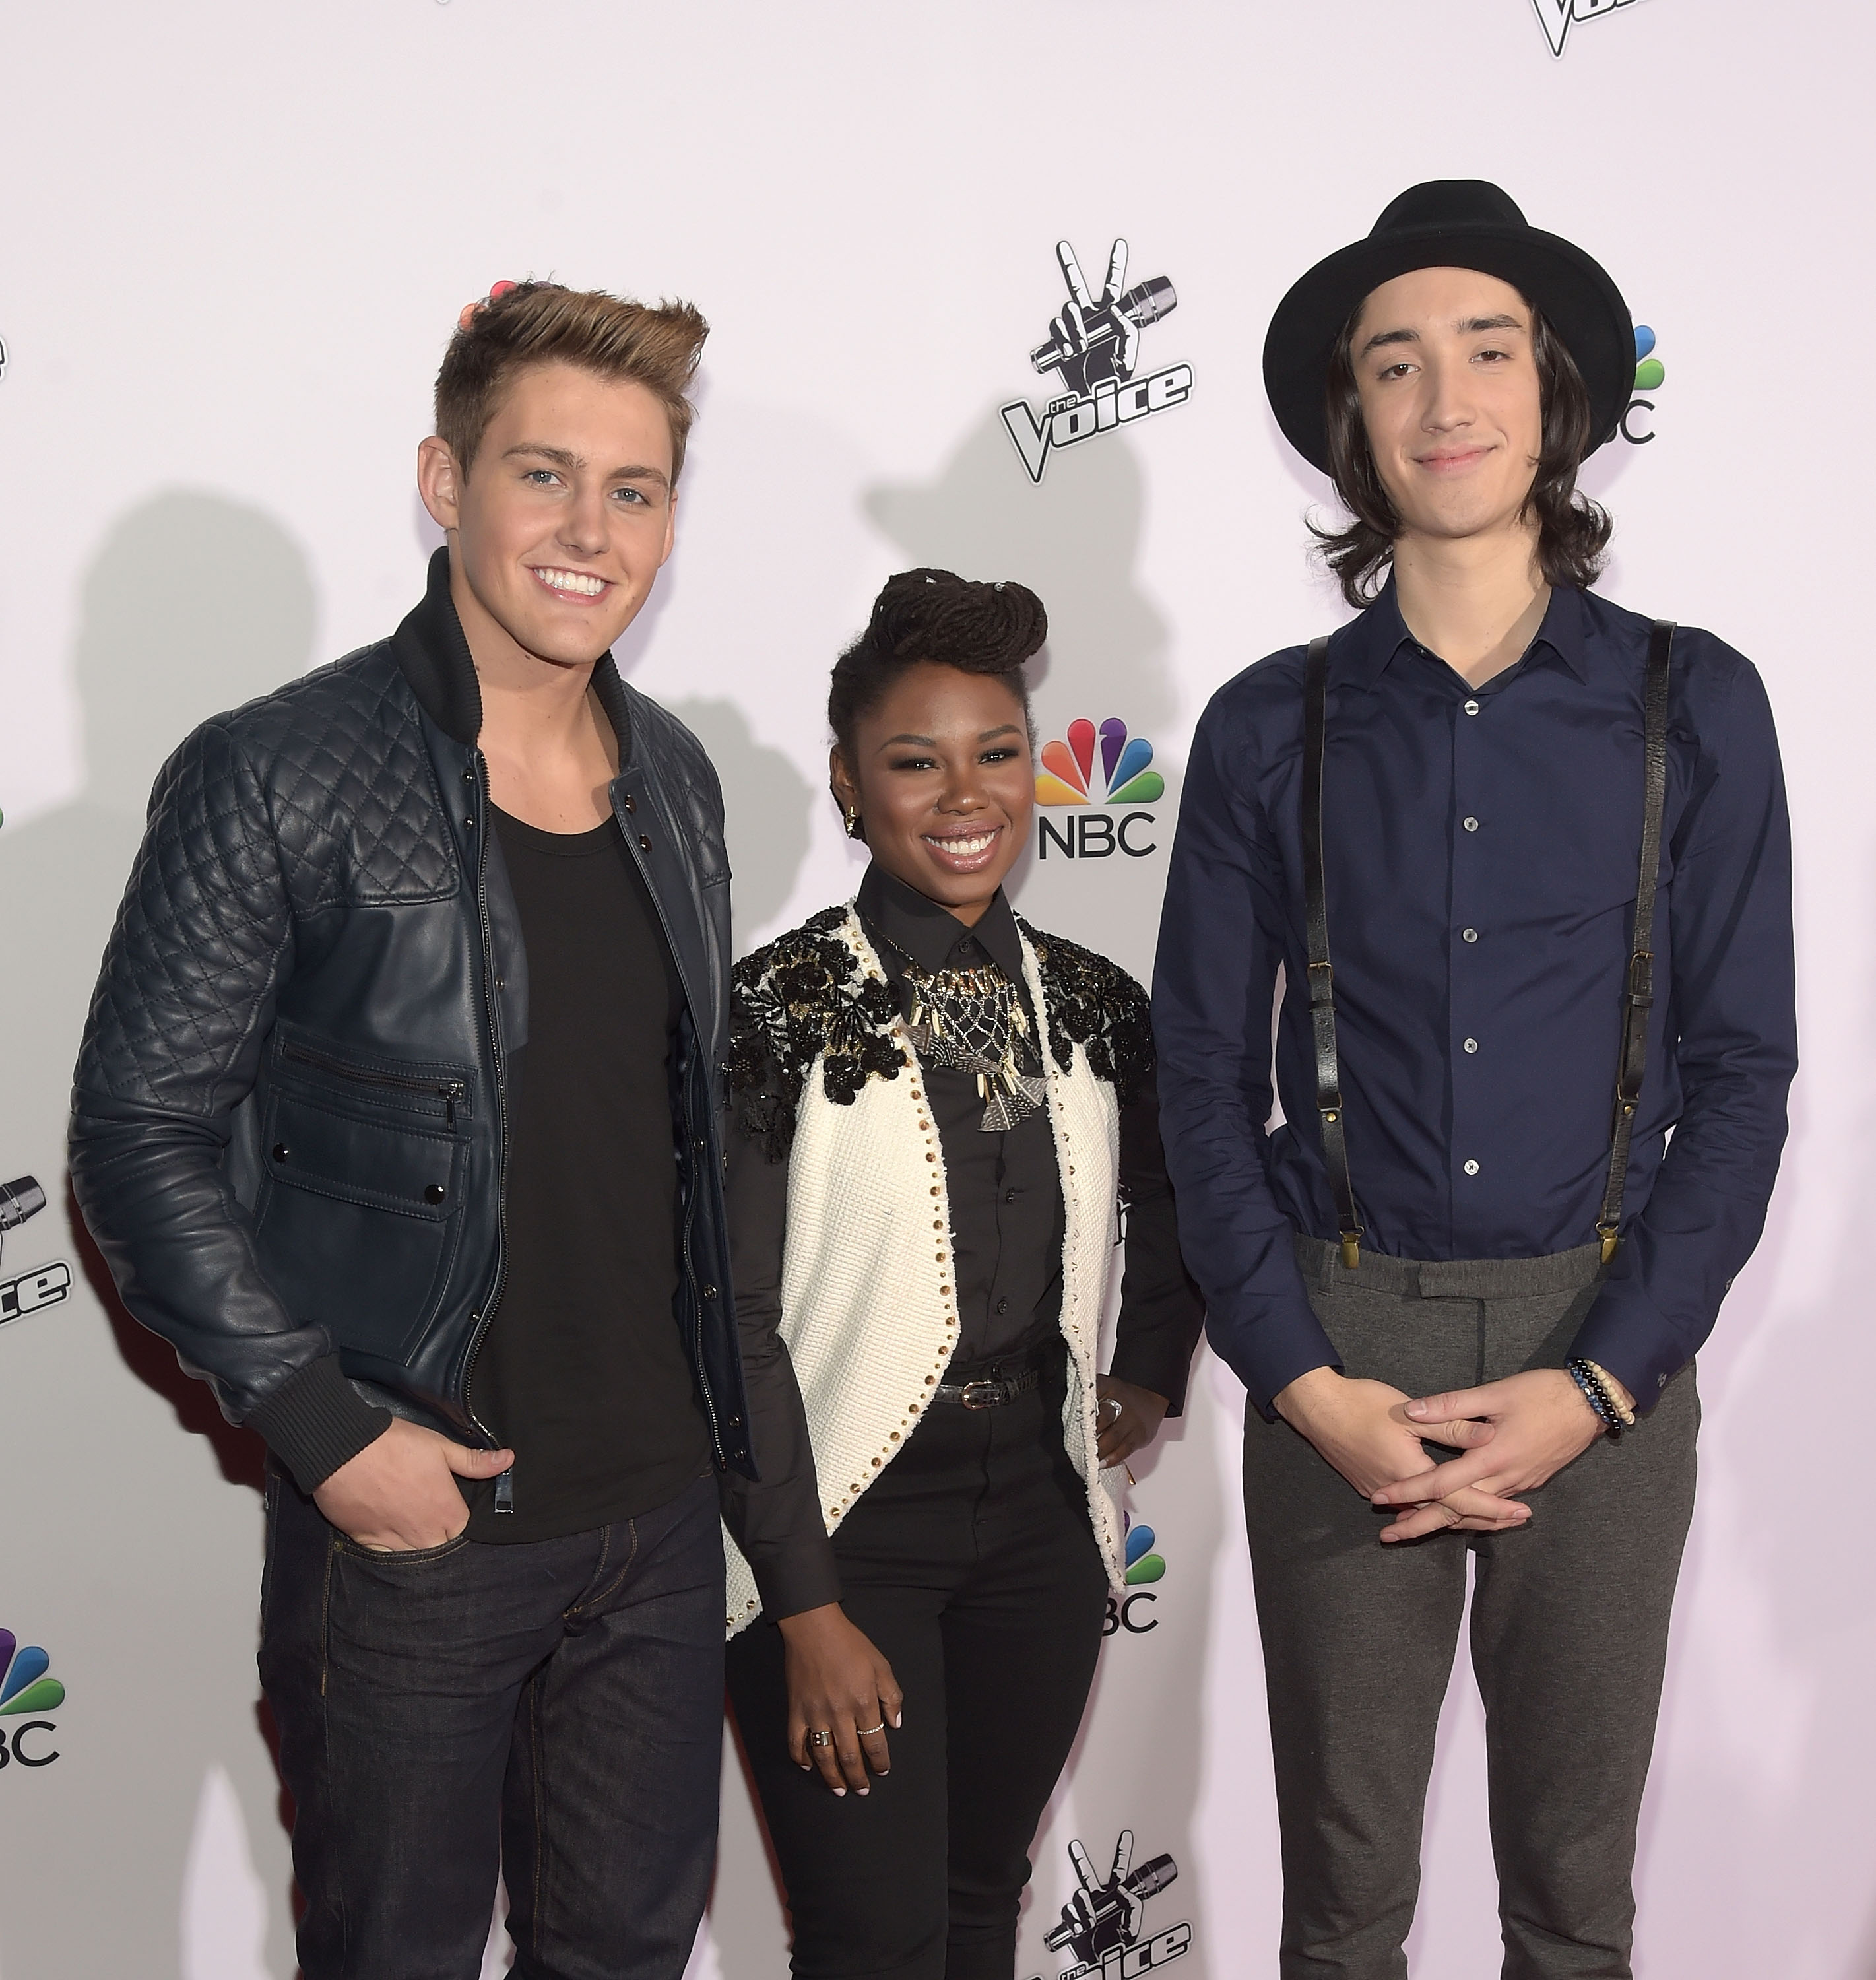 Watch: Local 20-year-old makes finals of 'The Voice'